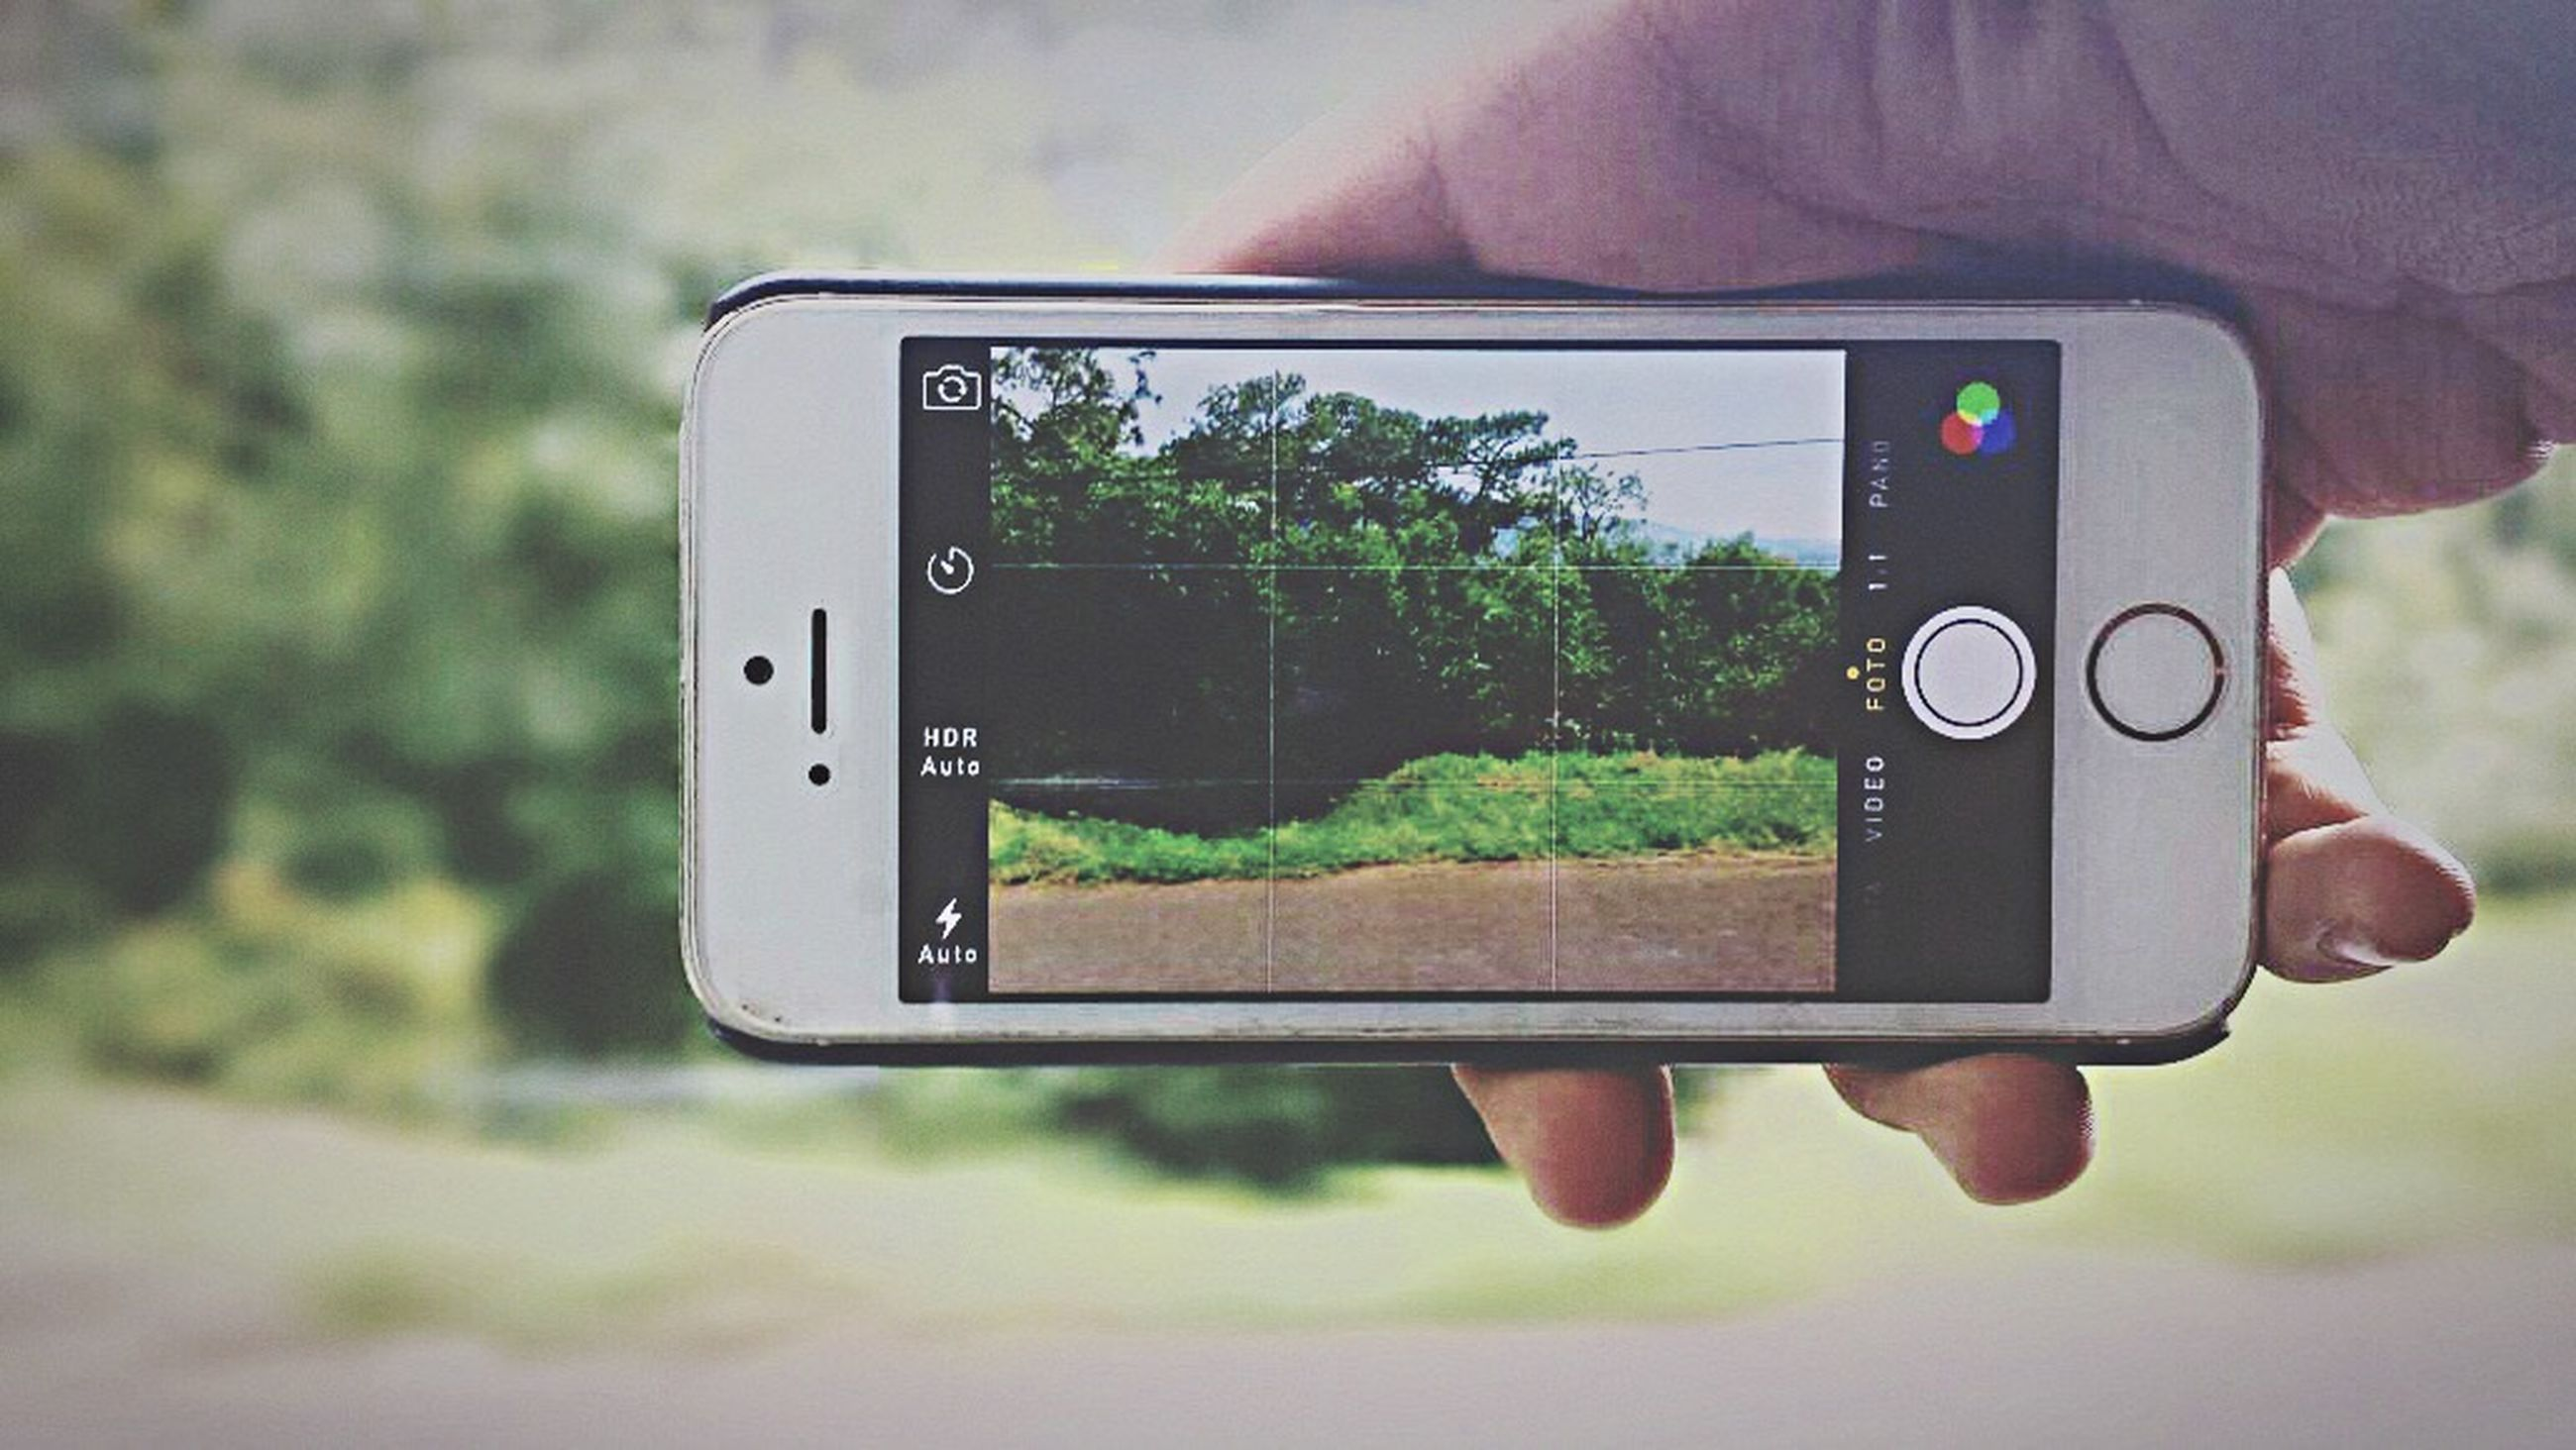 communication, technology, focus on foreground, tree, close-up, photography themes, wireless technology, green color, photographing, field, smart phone, one person, person, selective focus, day, part of, text, holding, growth, camera - photographic equipment